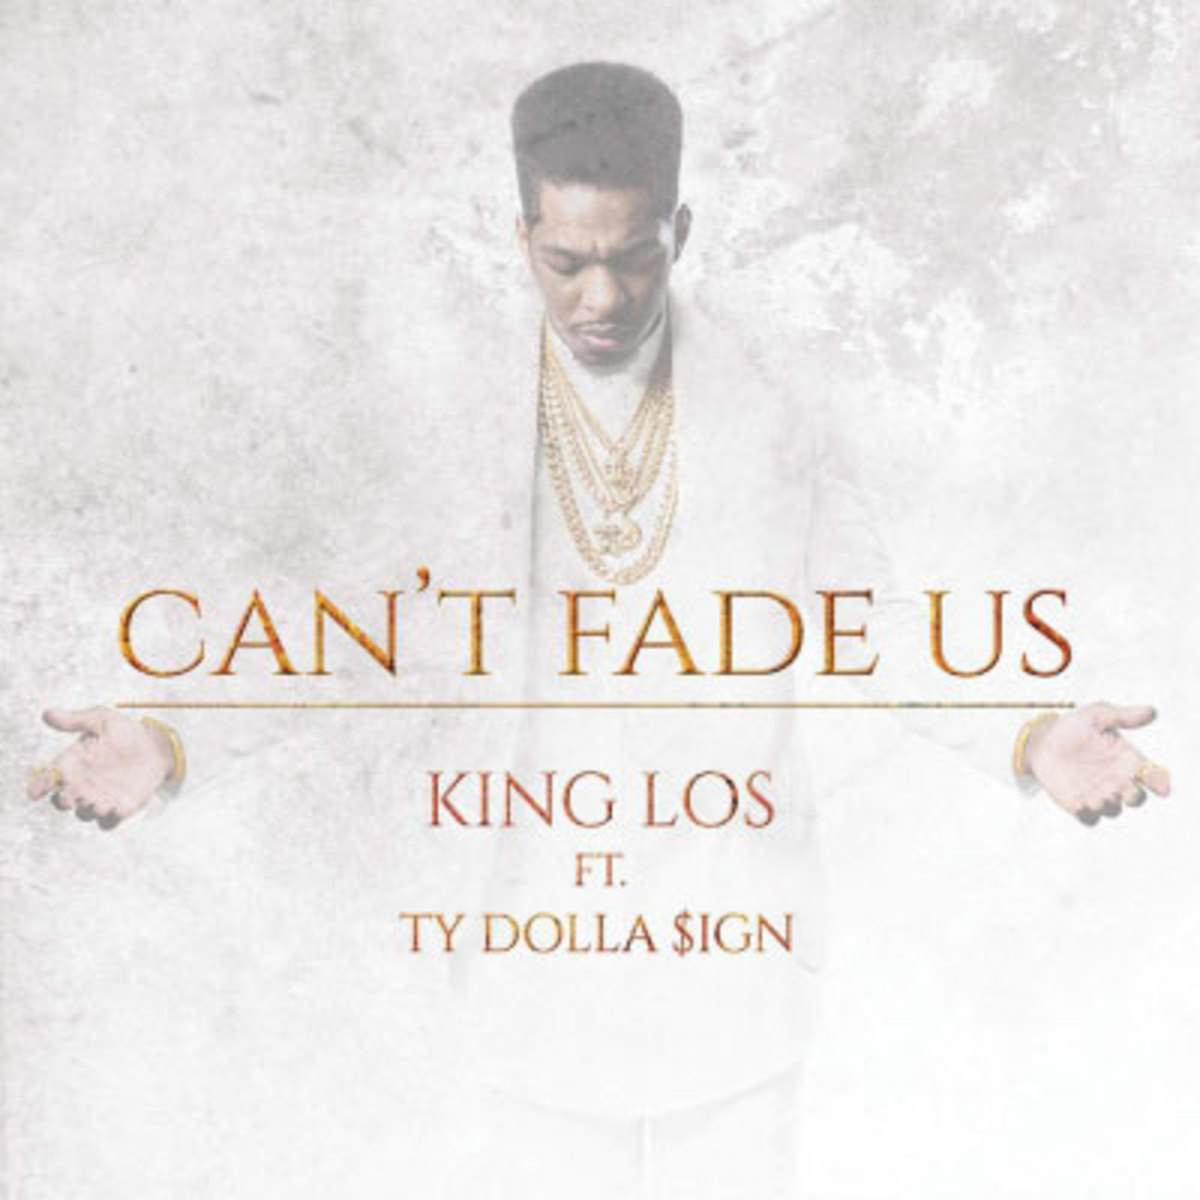 king-los-cant-fade-us.jpg